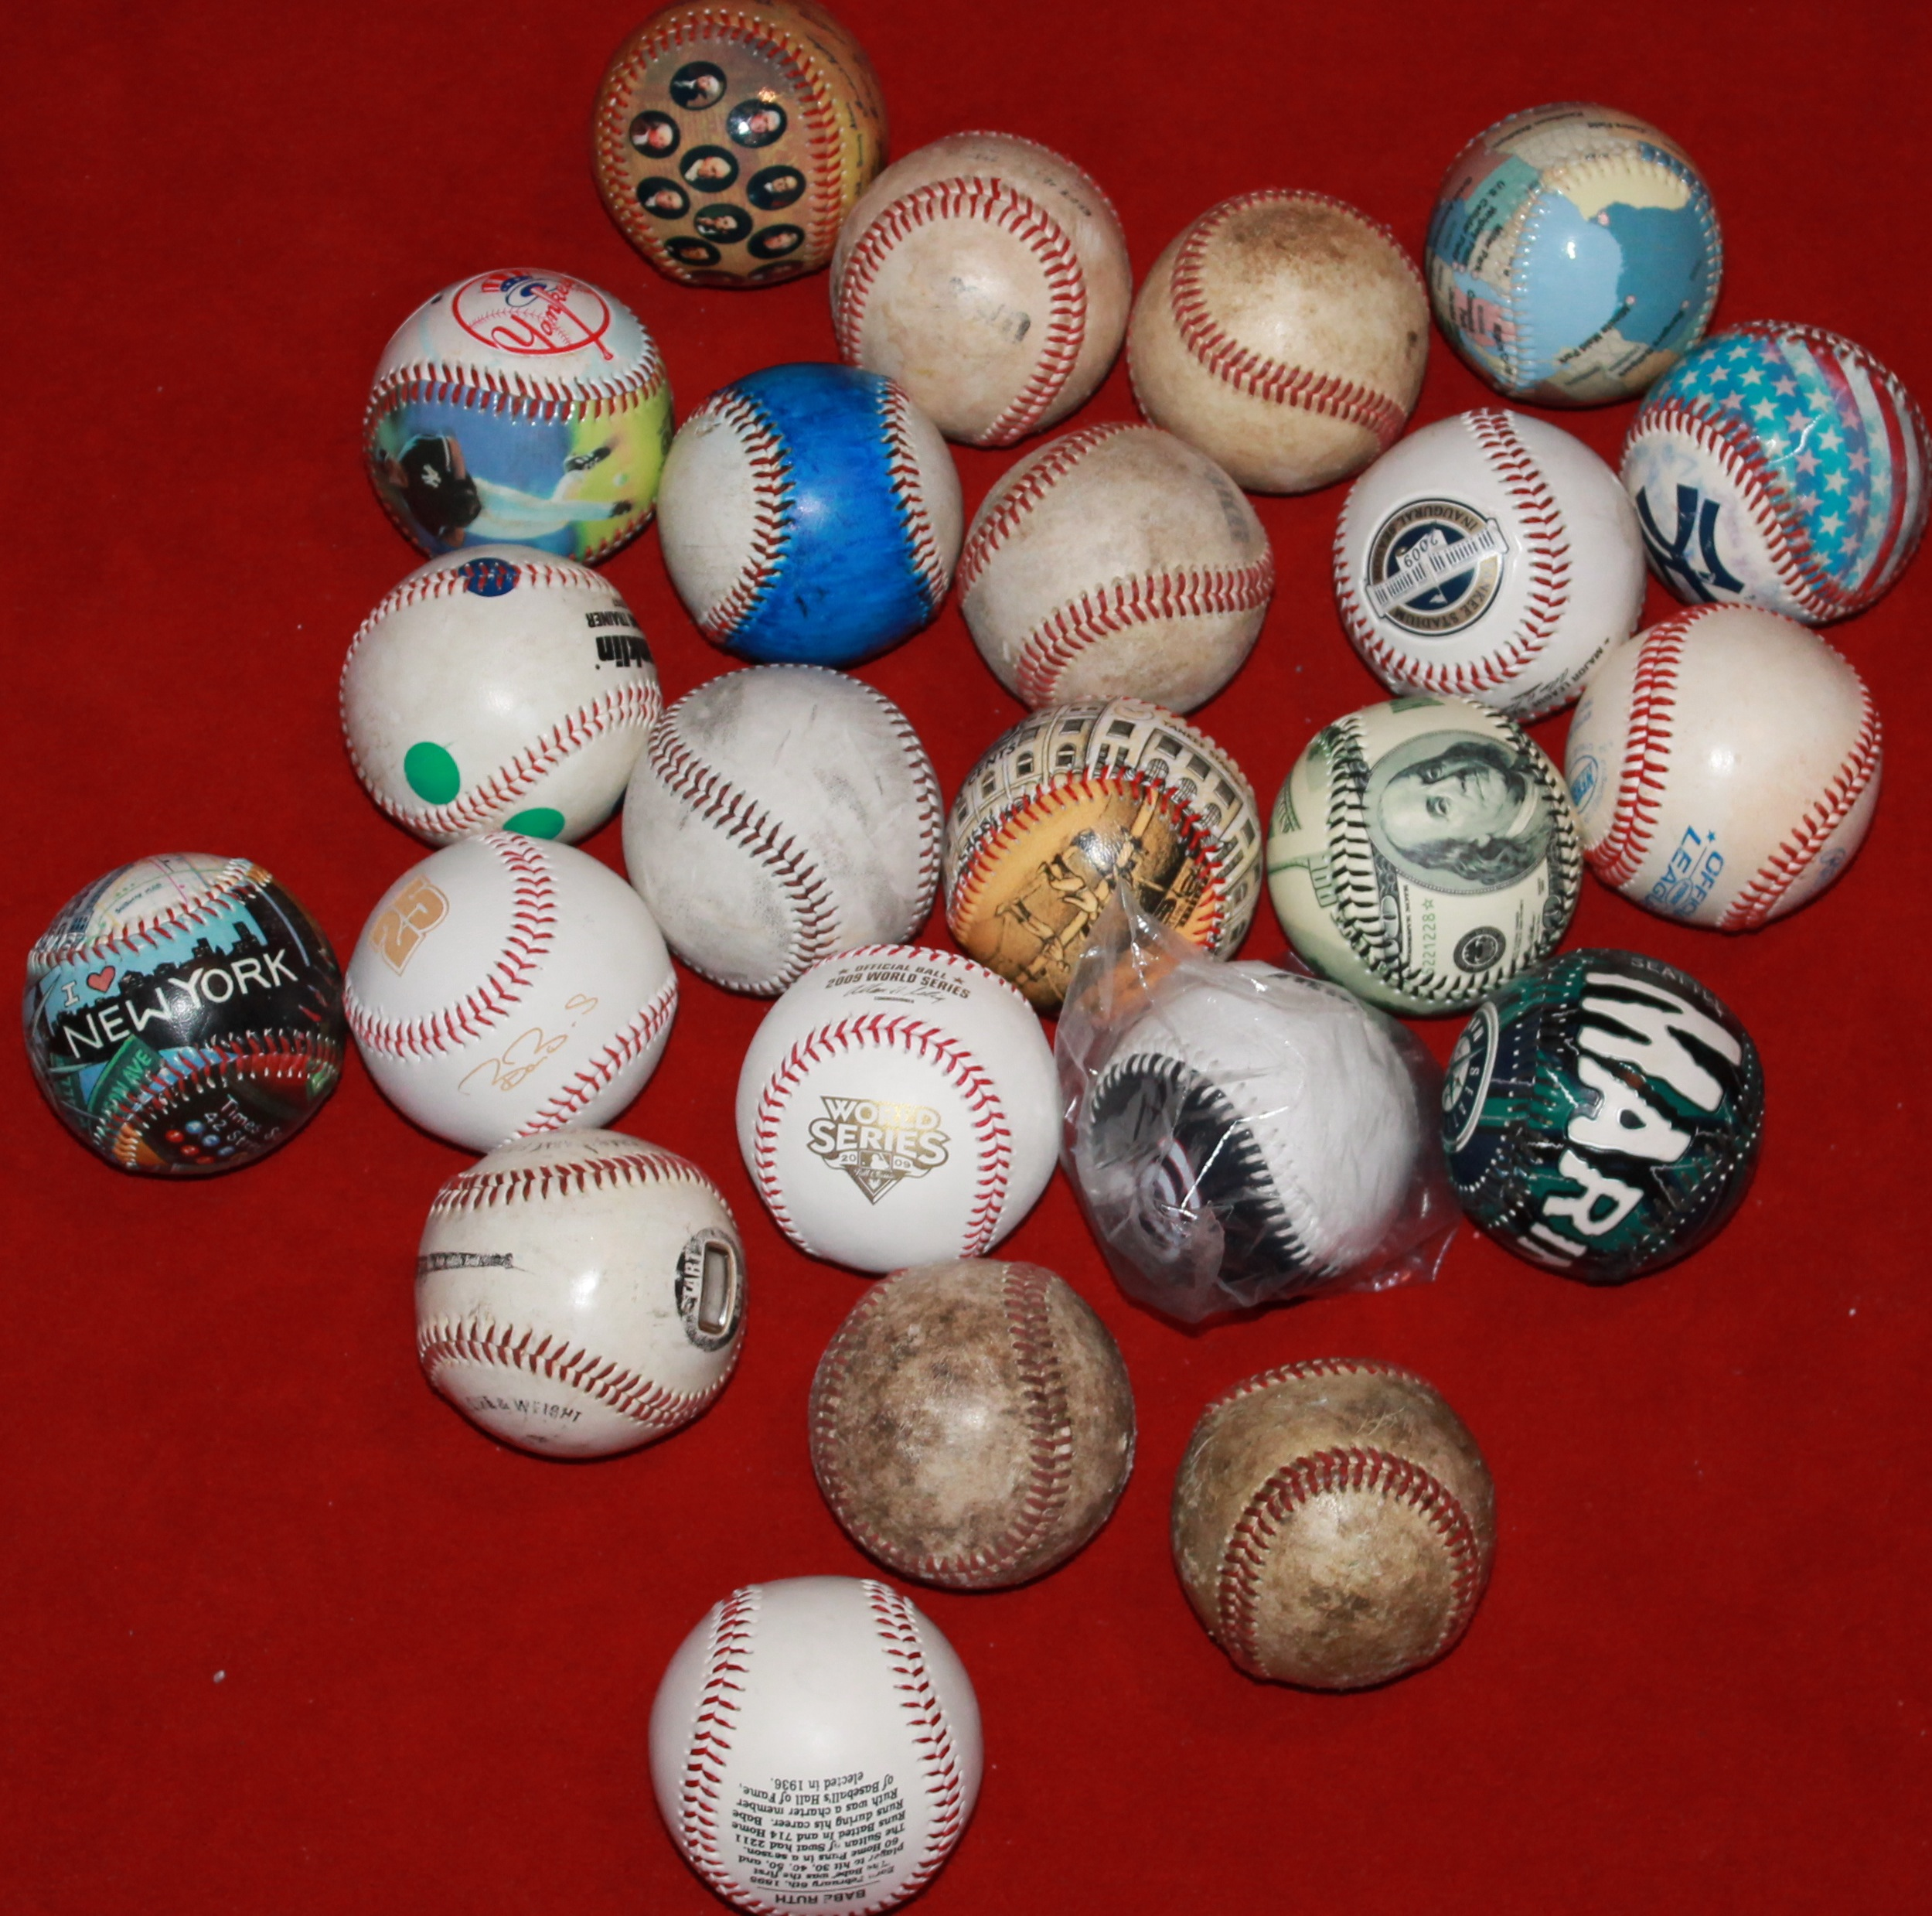 collected baseball knick knacks observing baseball